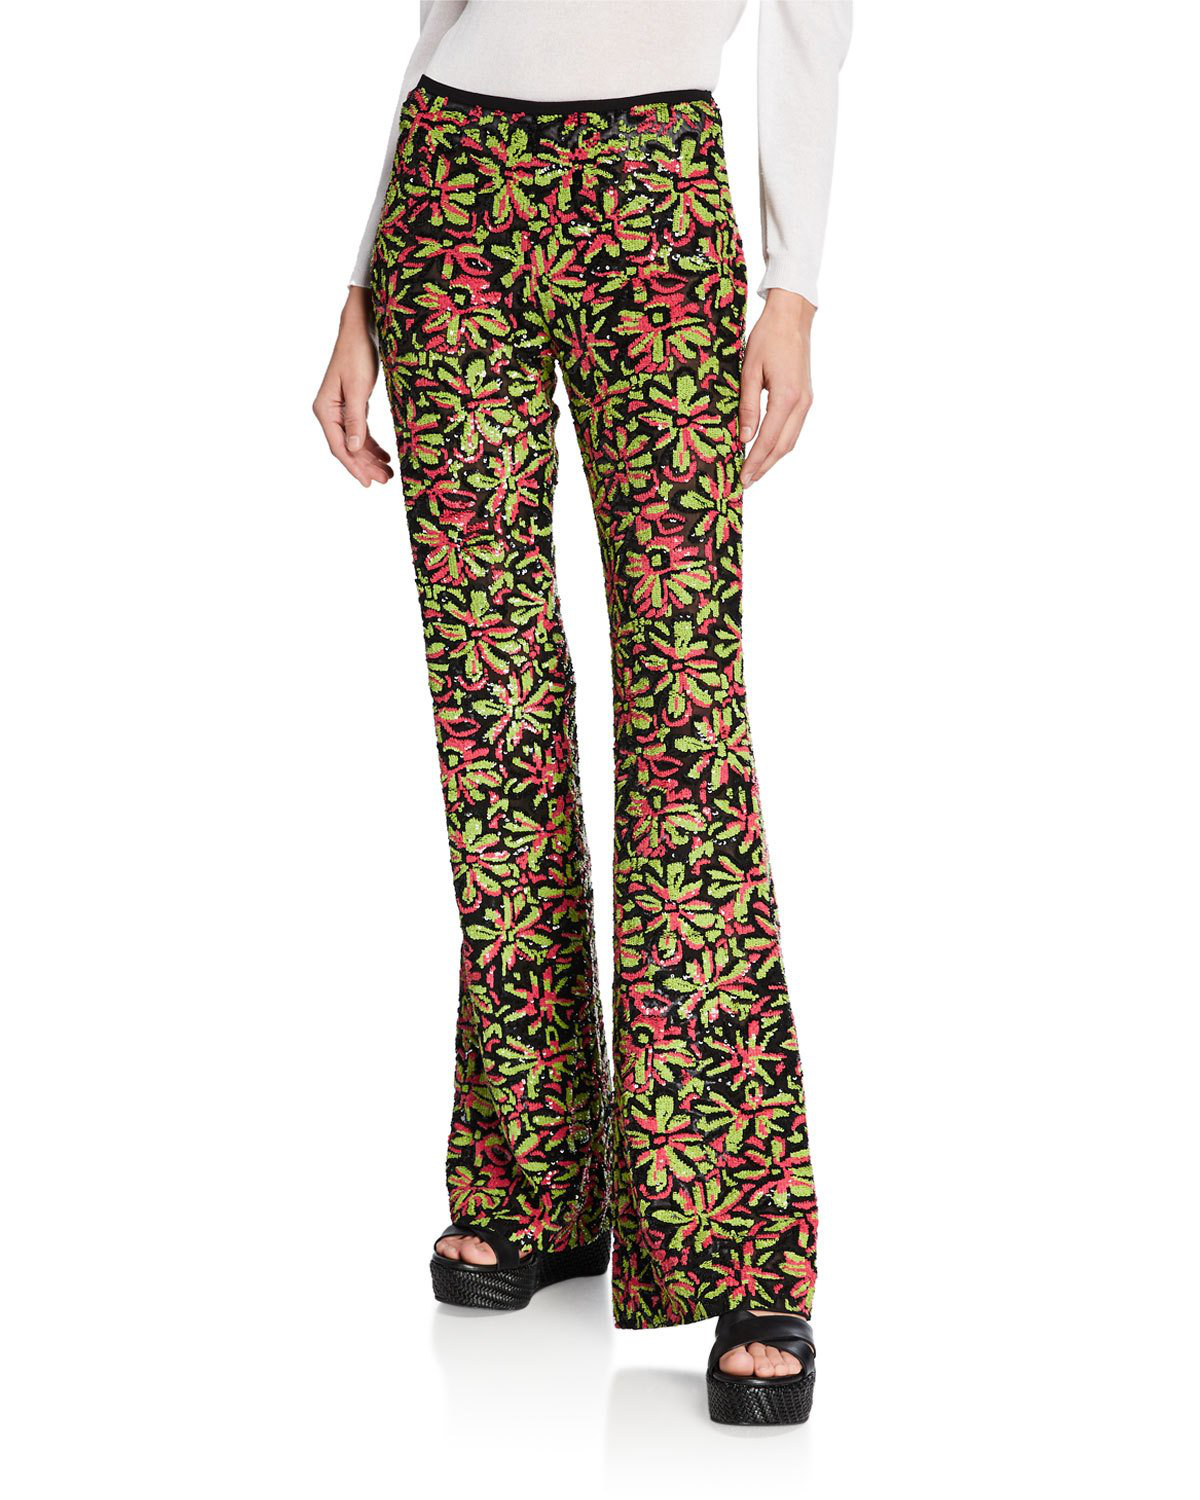 Michael Kors Watermelon-Lime Daisy Embellished Flare Pants In Green